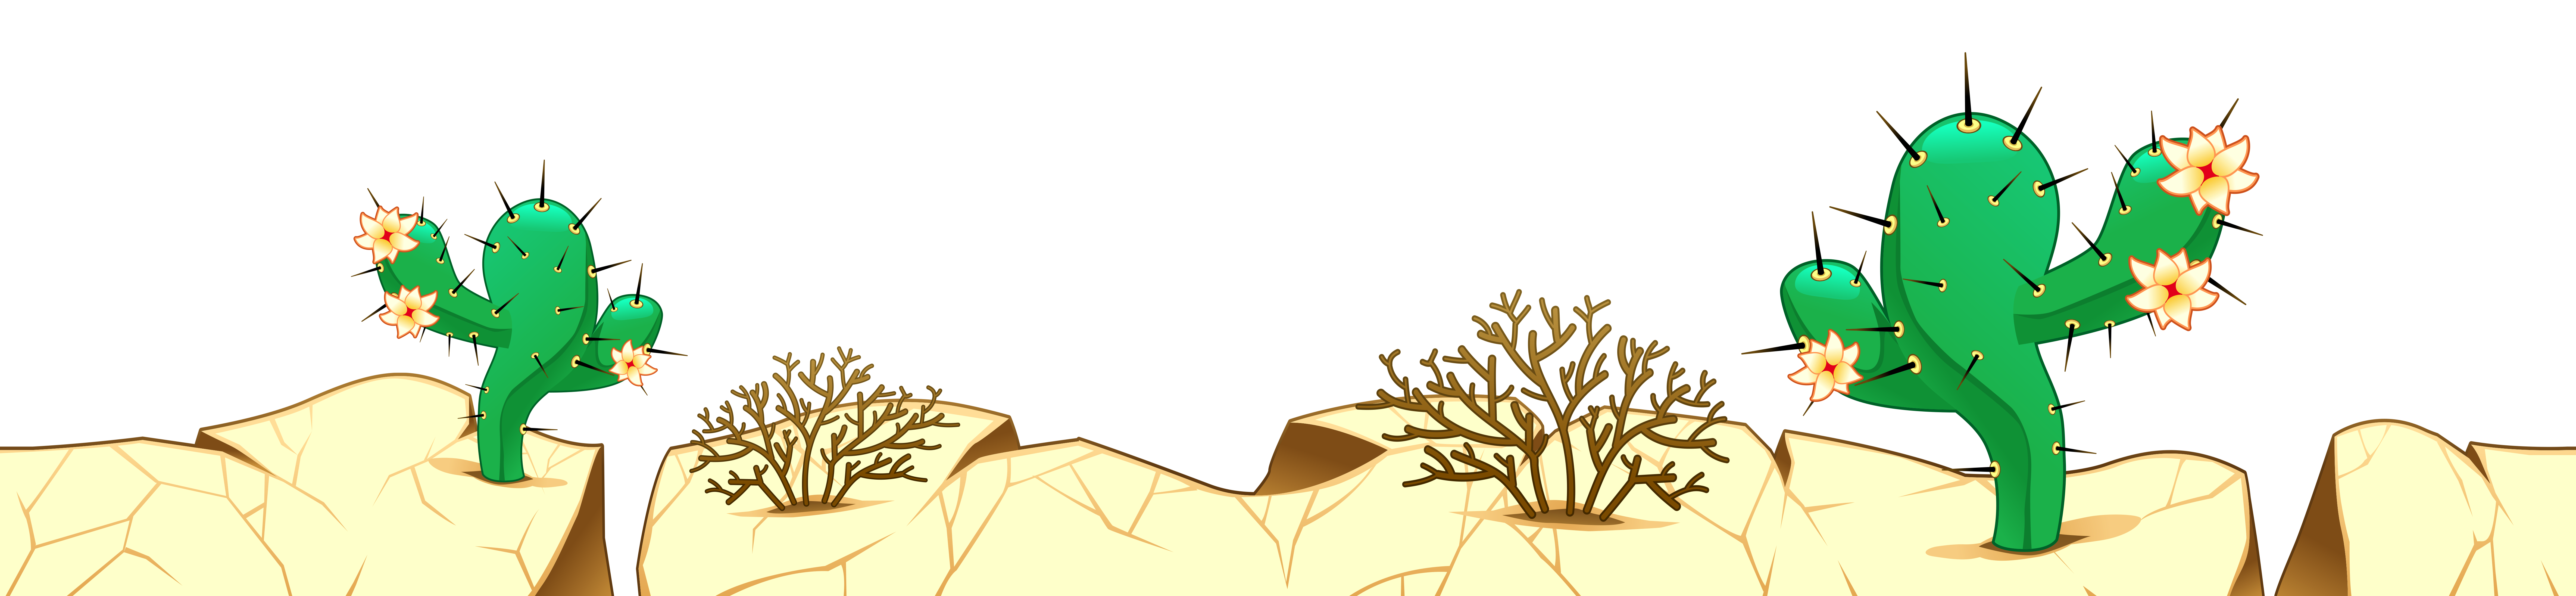 Desert clipart desert place.  collection of images